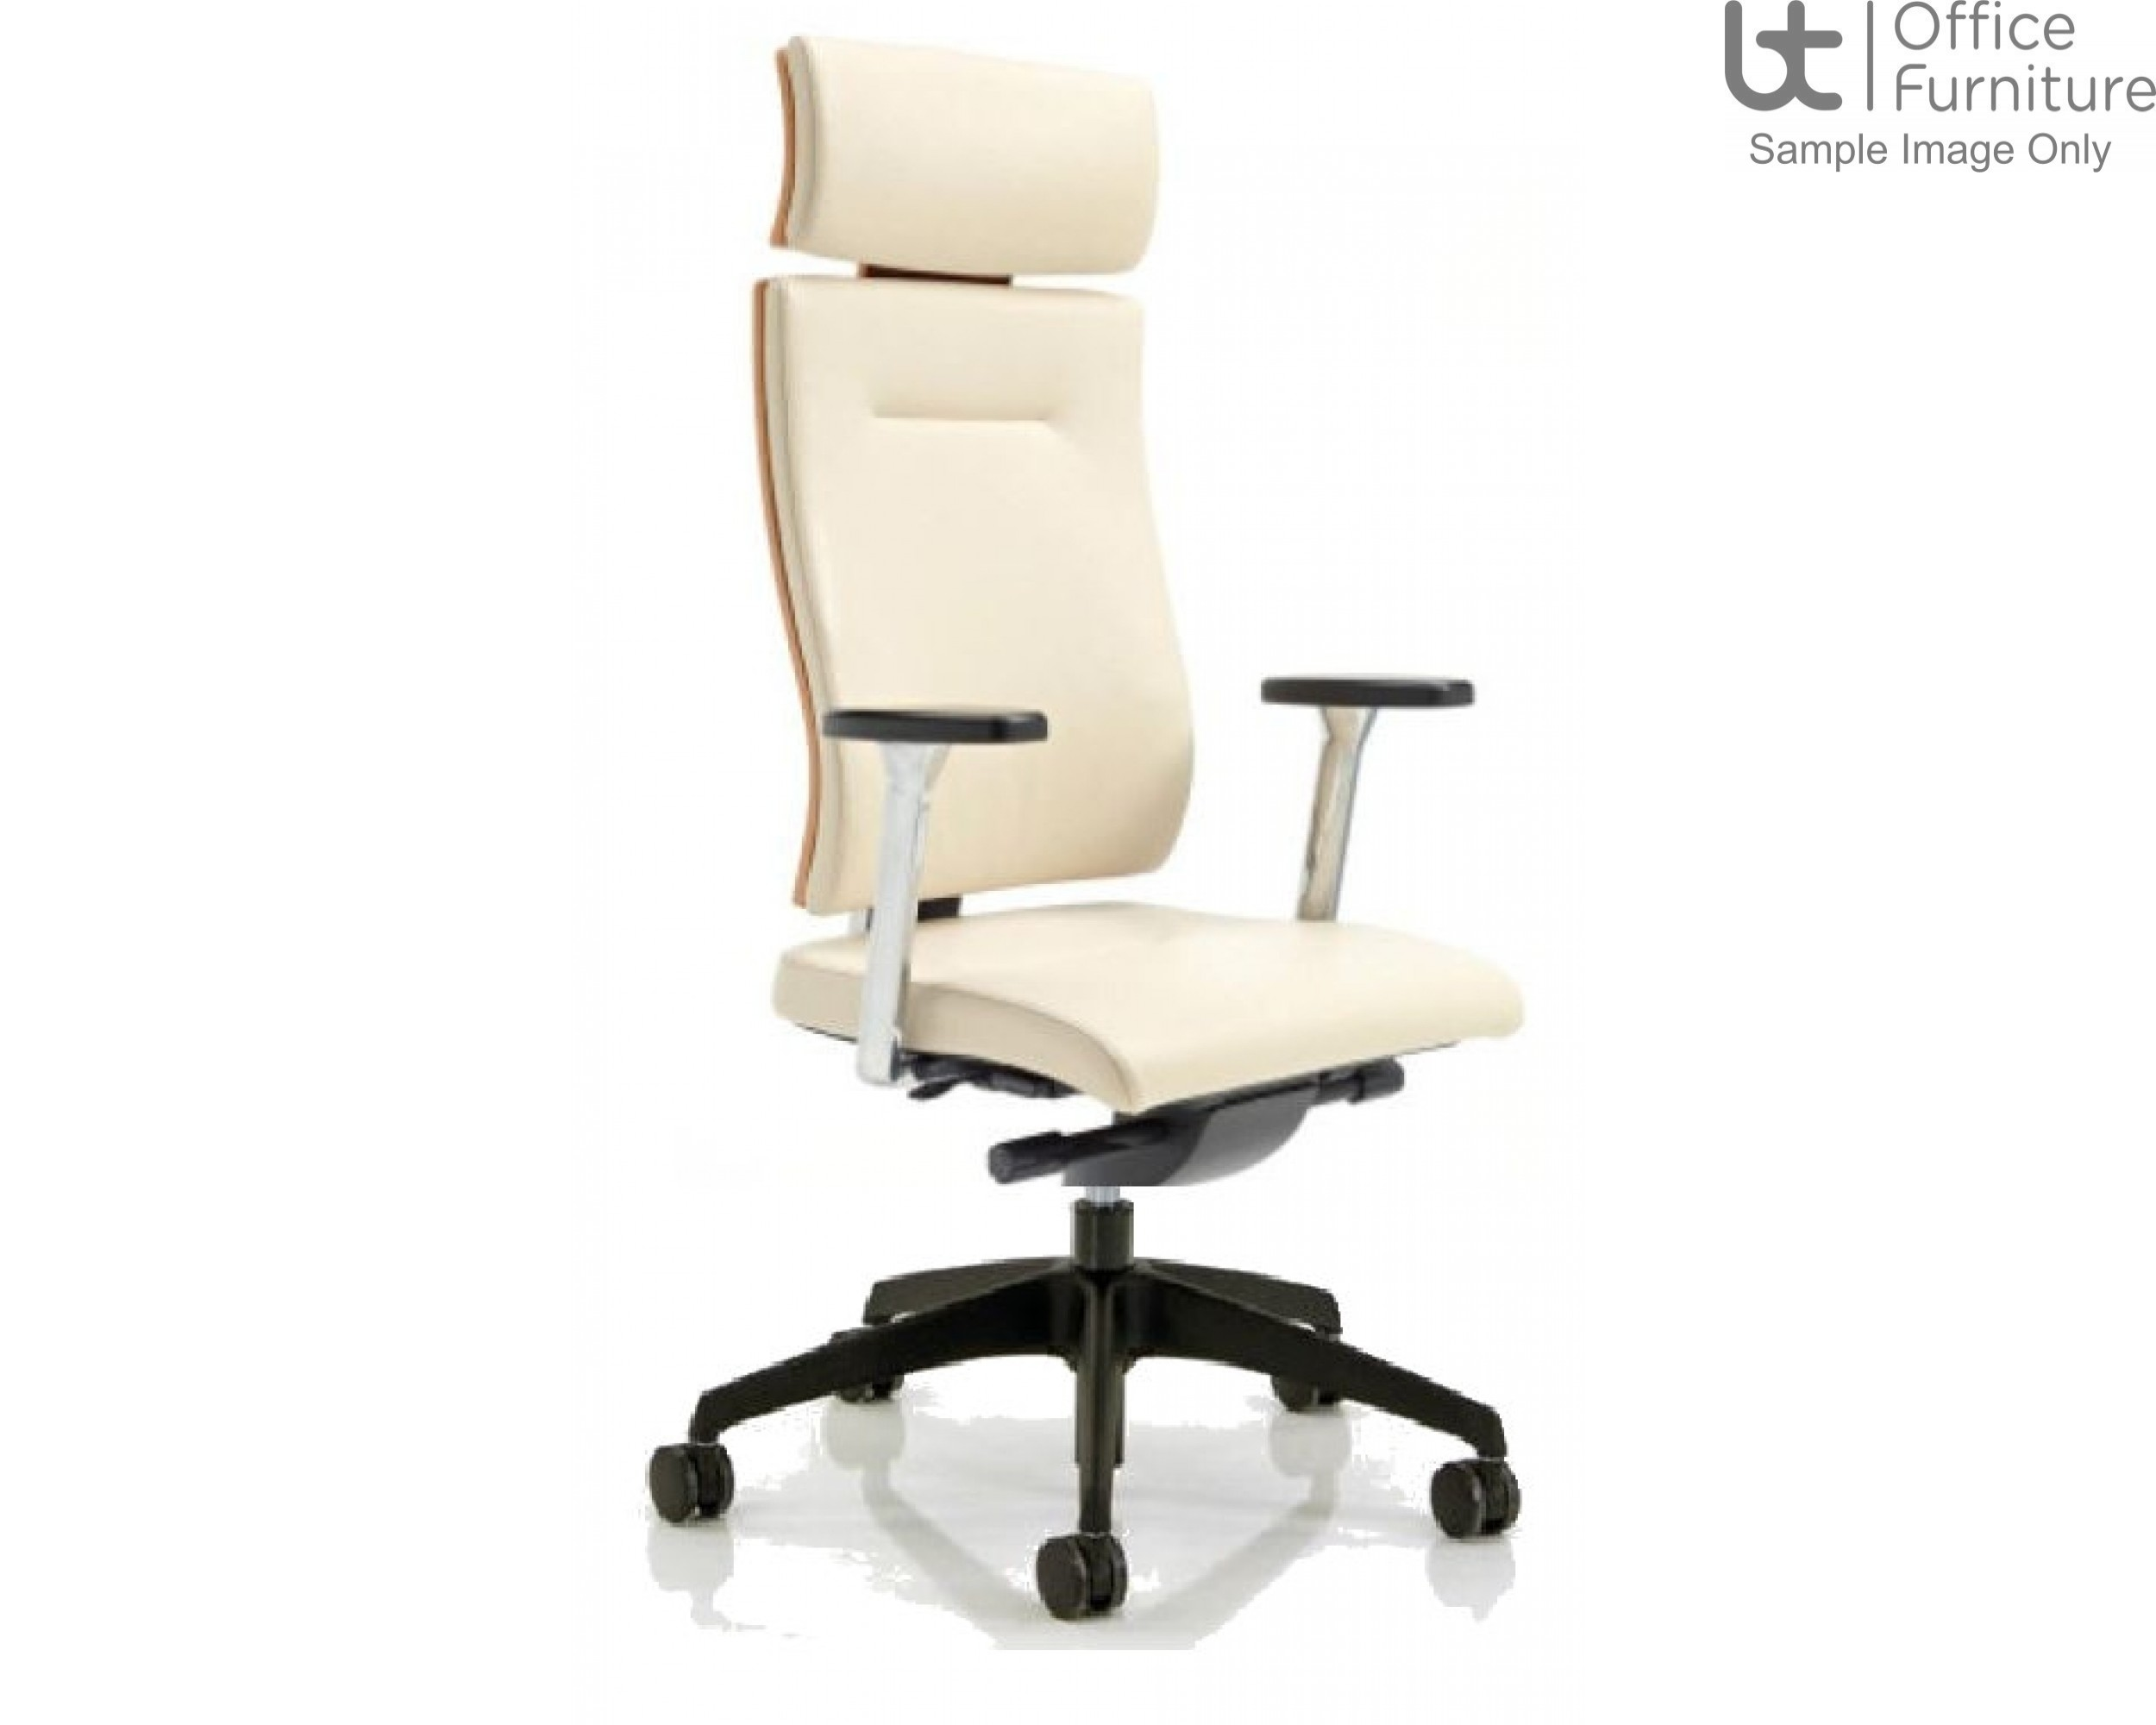 Verco Executive seating - Vibe Show Wood High Back Task Chair with Arms